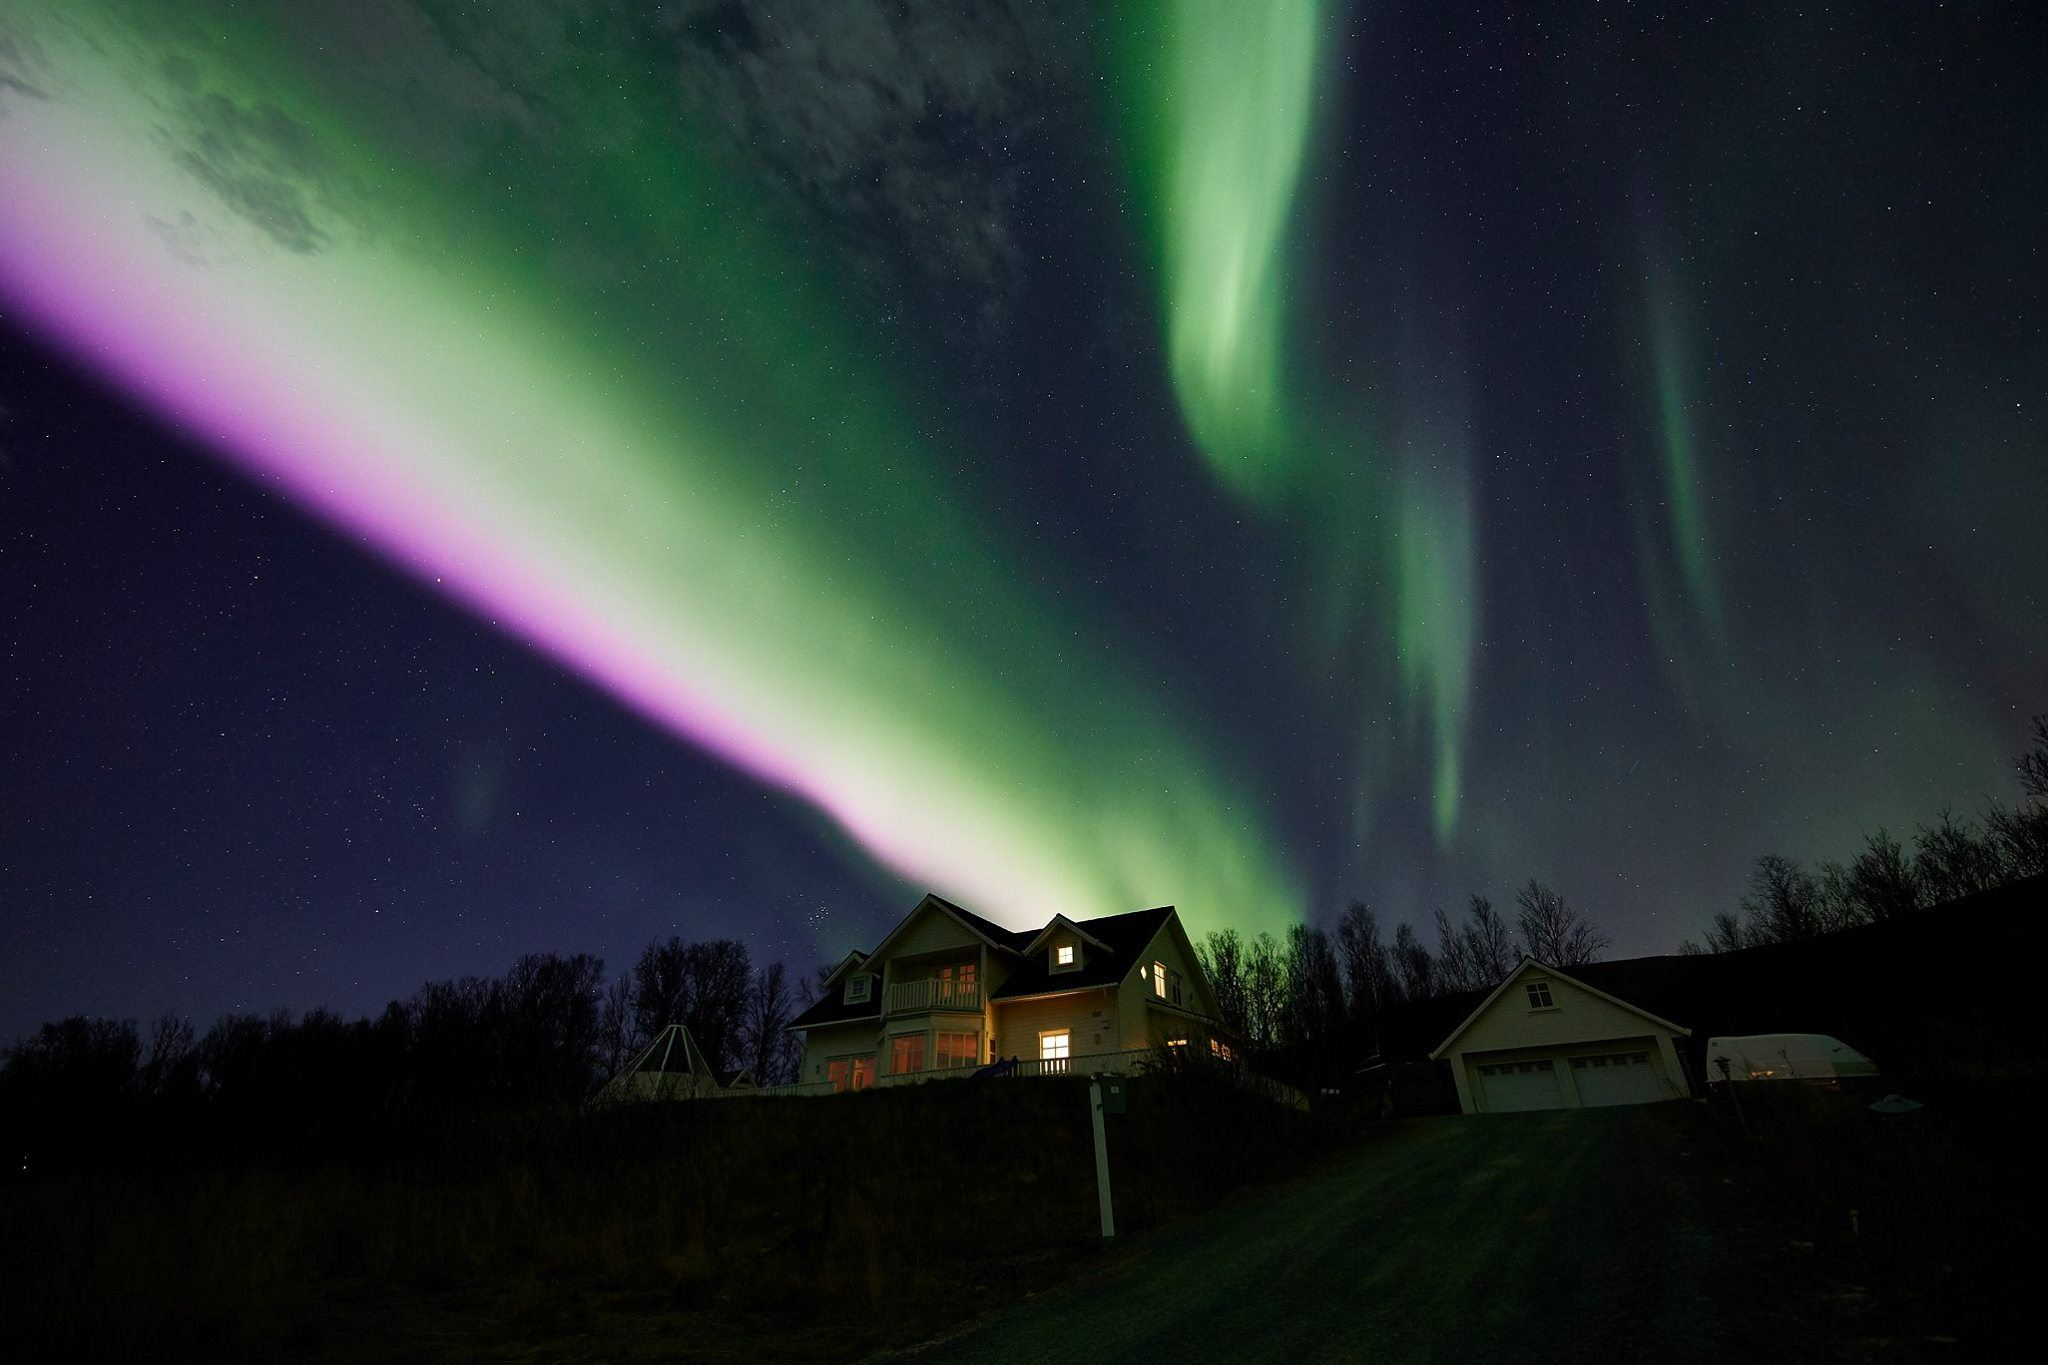 Crystal Lavvo Aurora overnight - Green Gold of Norway